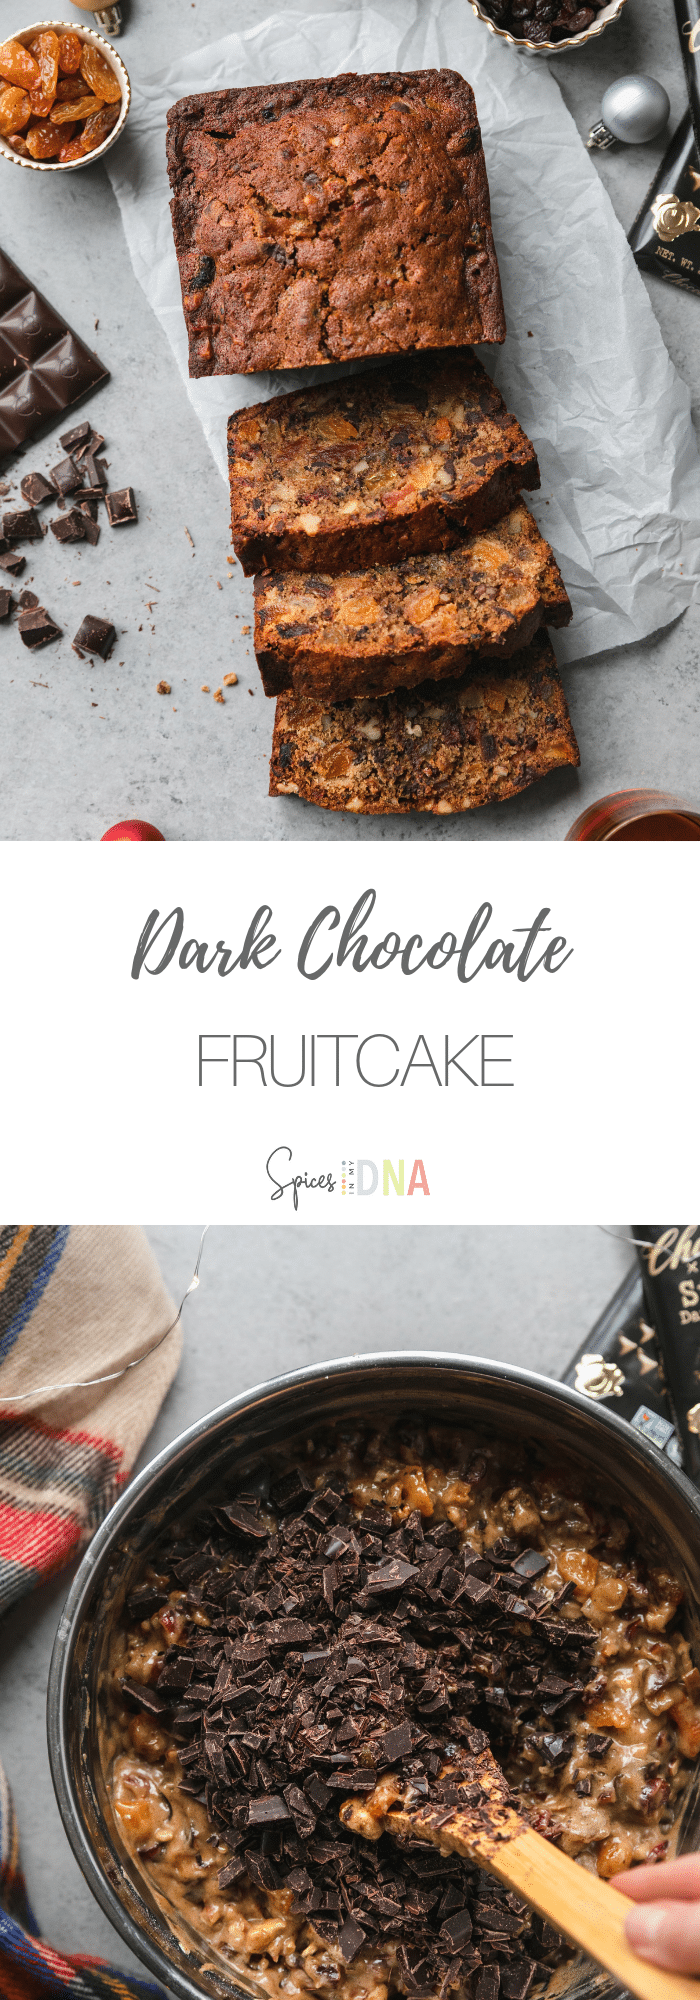 This Dark Chocolate Fruitcake is not your average fruitcake! It's made with dried cranberries, dates, apricots, raisins, and pineapple, brandy, a blend of holiday spices, vanilla, nuts, and chopped dark chocolate. It's an incredibly delicious, modern take on the classic fruitcake! #fruitcake #holidaybaking #christmas #darkchocolate